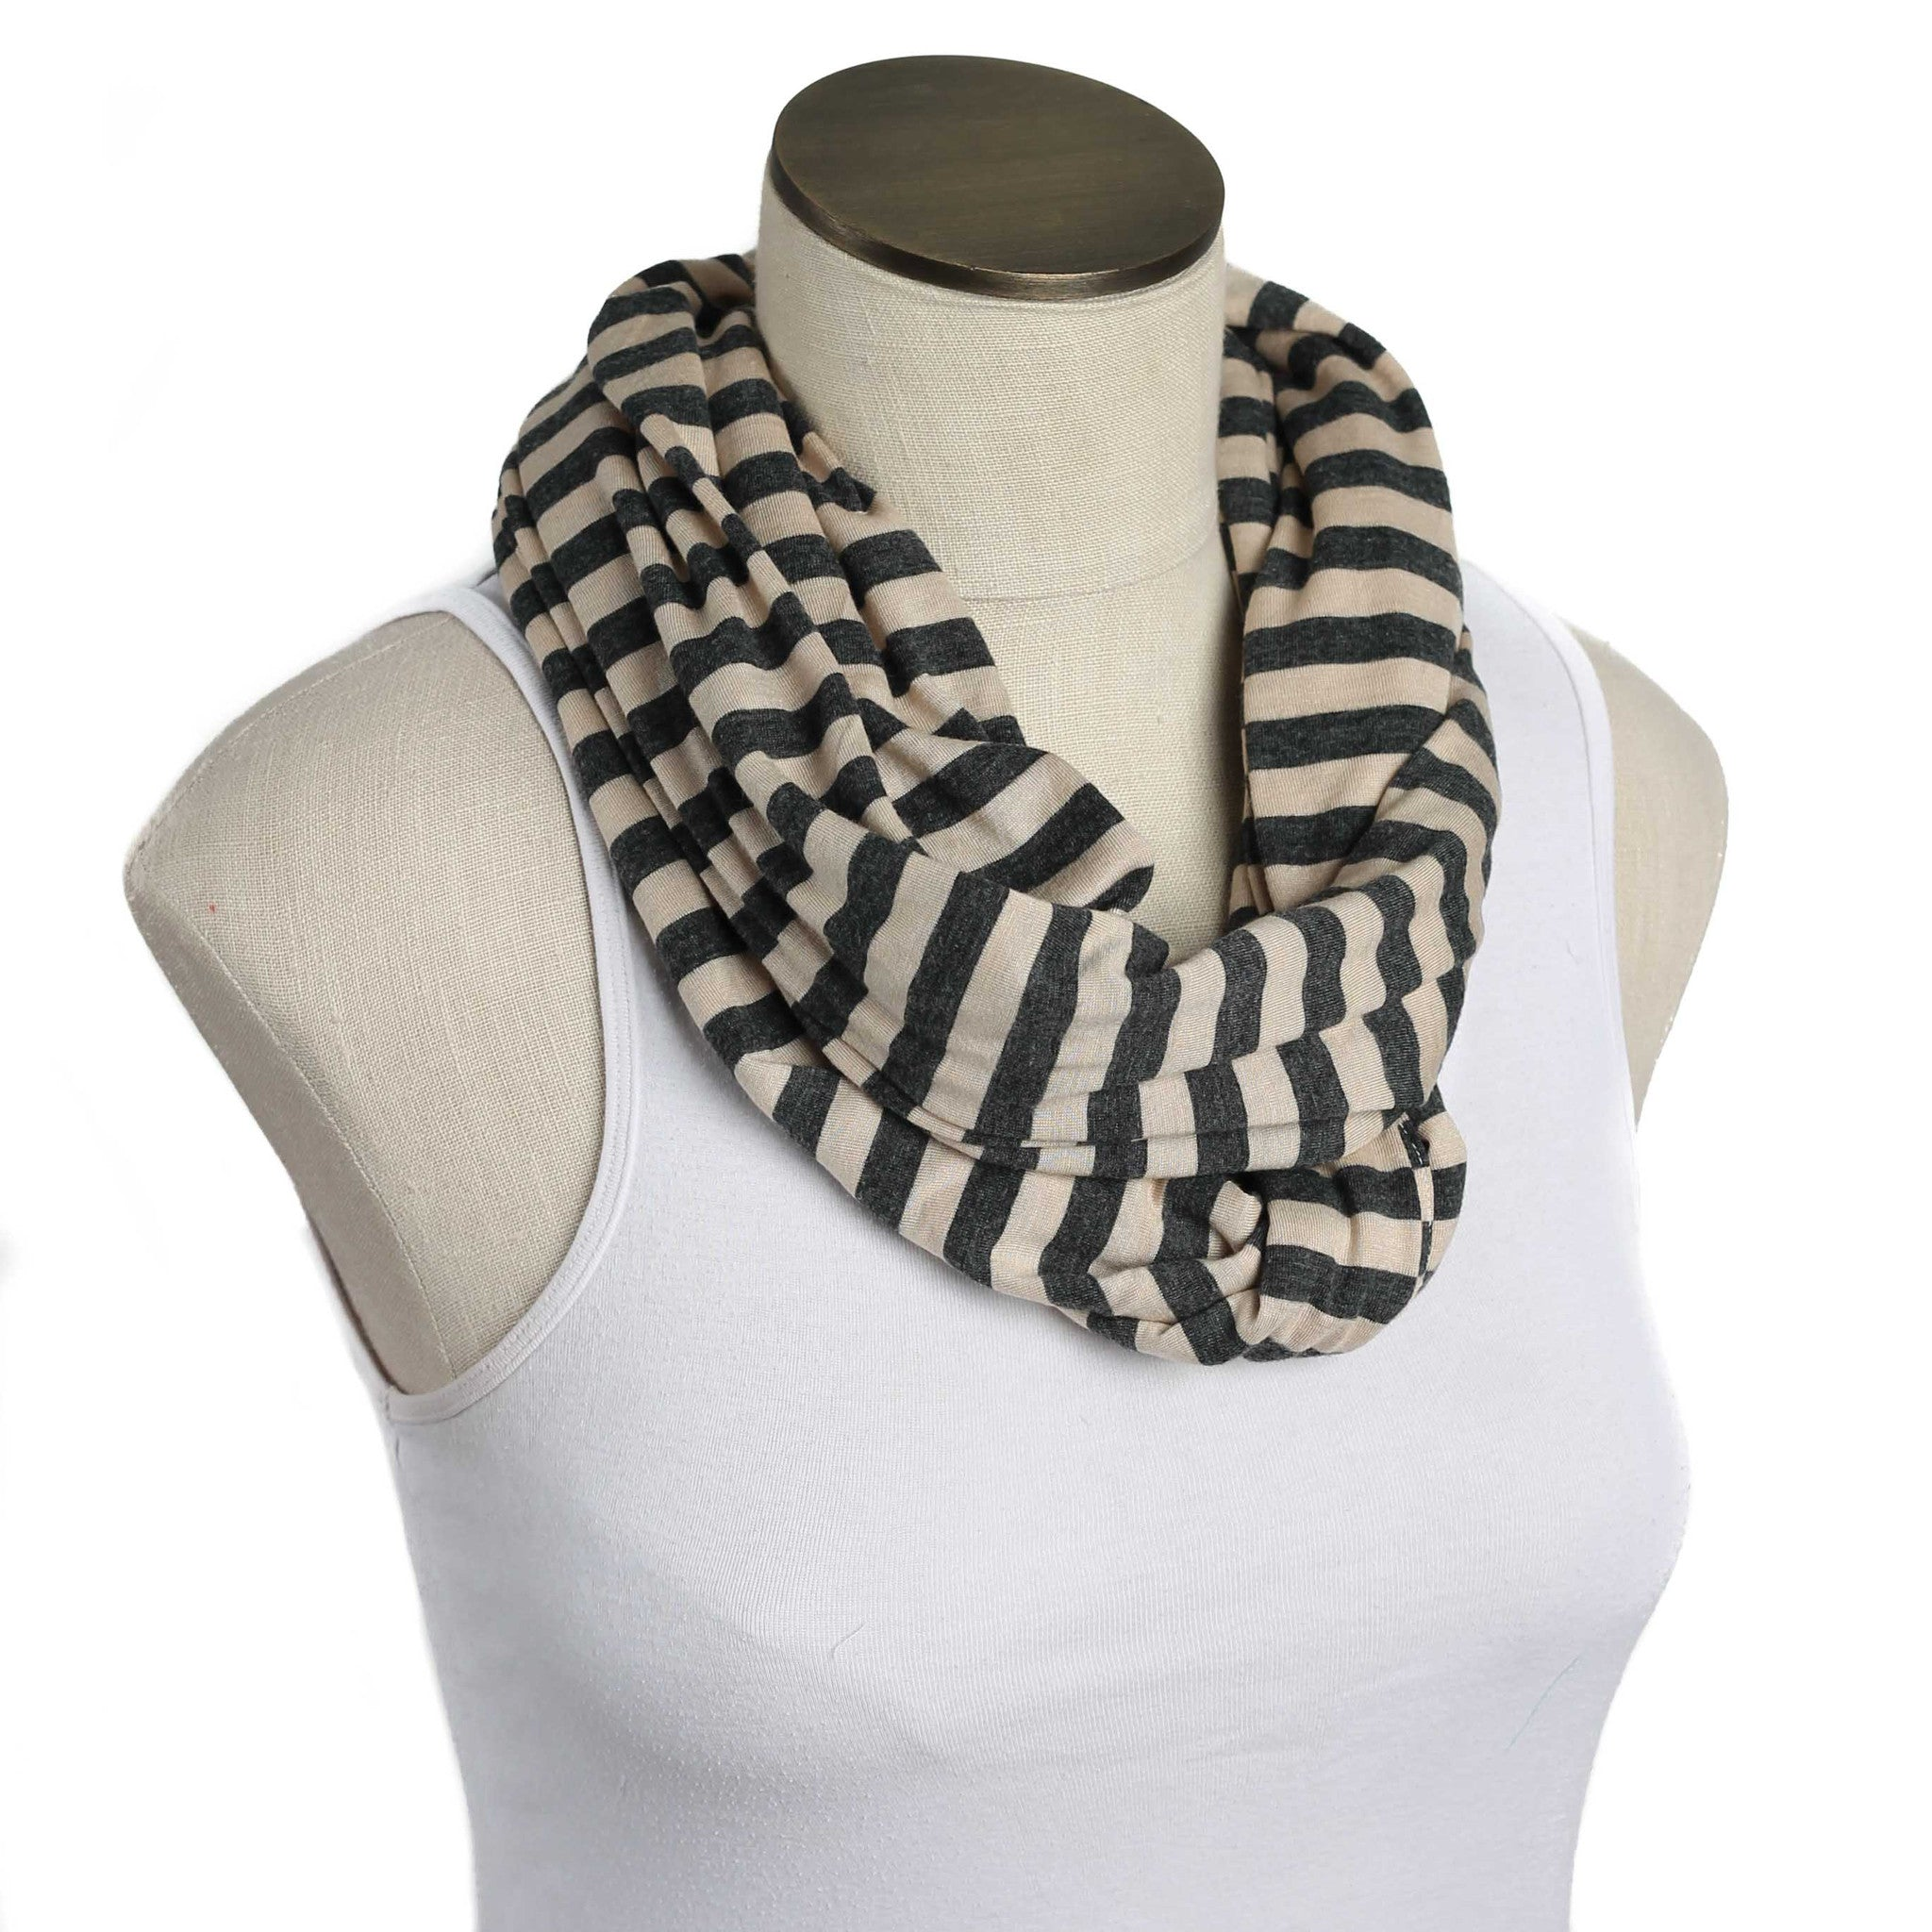 Tan & Charcoal Gray Striped Nursing Scarf